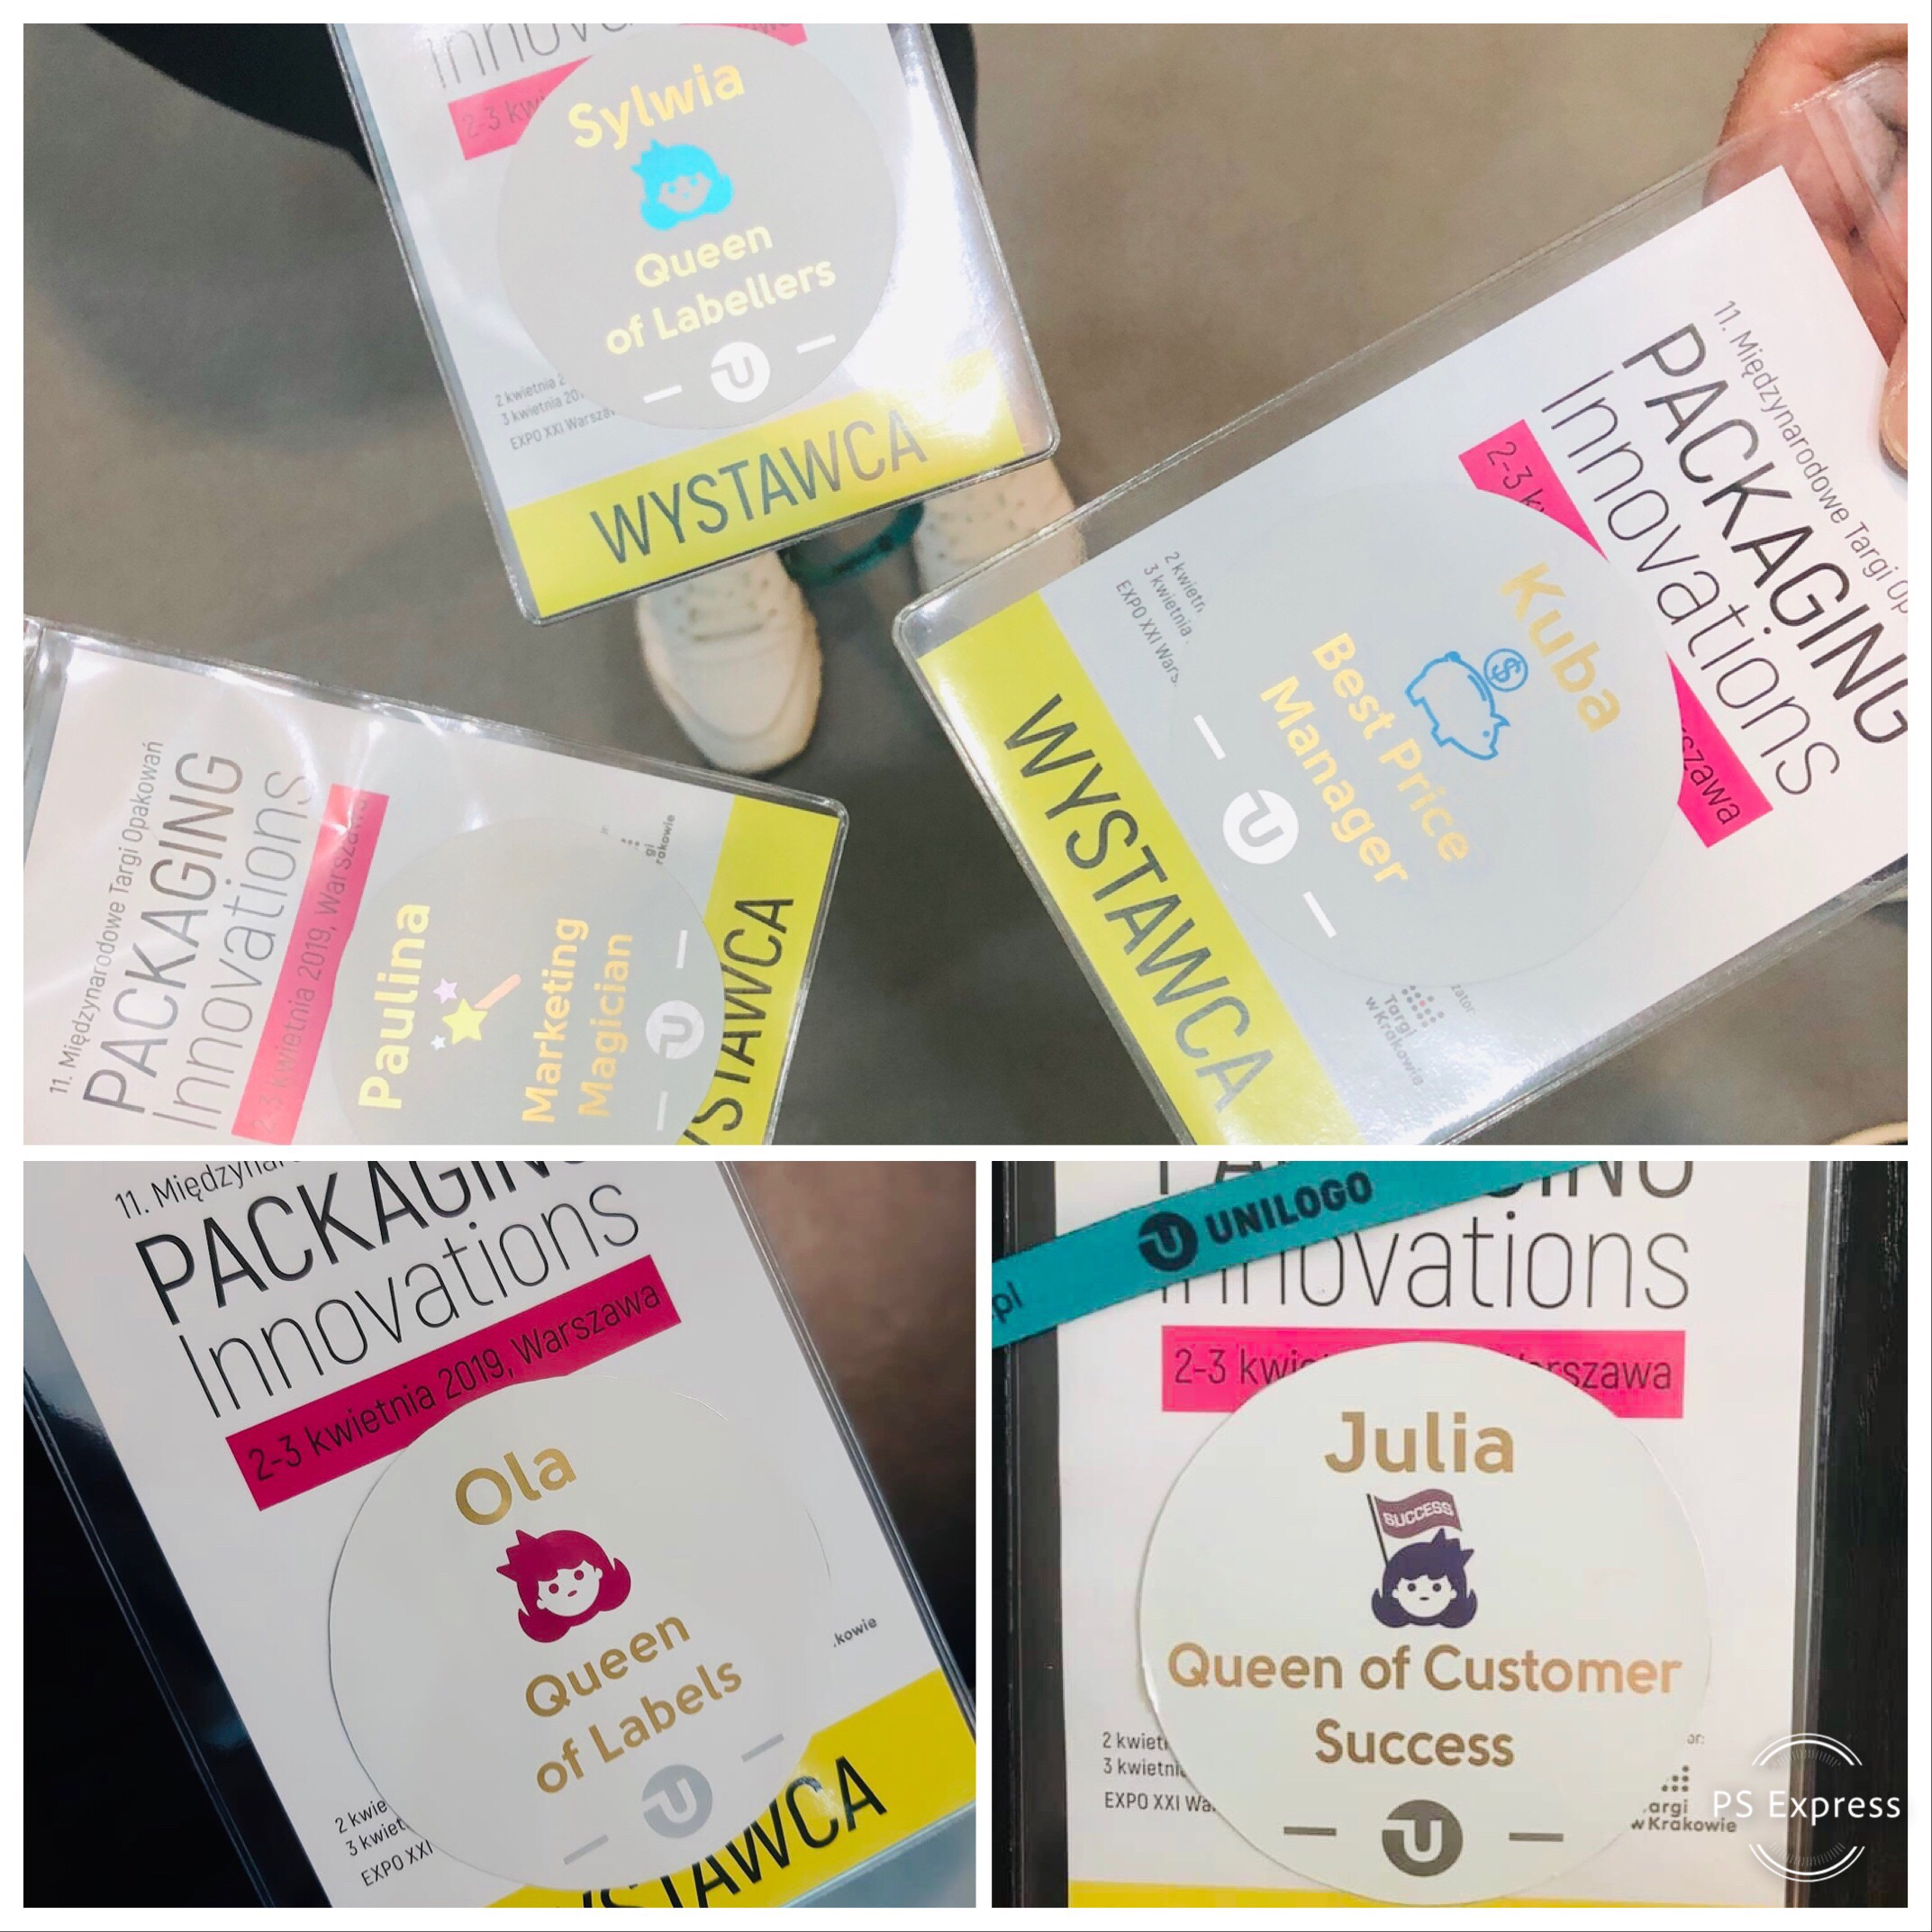 personalizowane etykiety imienne na targi Packaging Innovations 2019